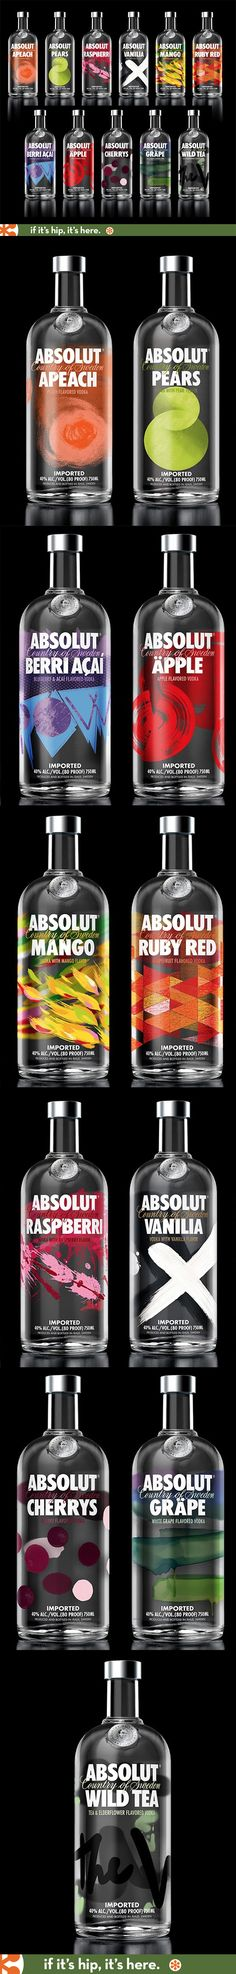 A look at all the newly redesigned Absolut Flavored Vodka Bottles.